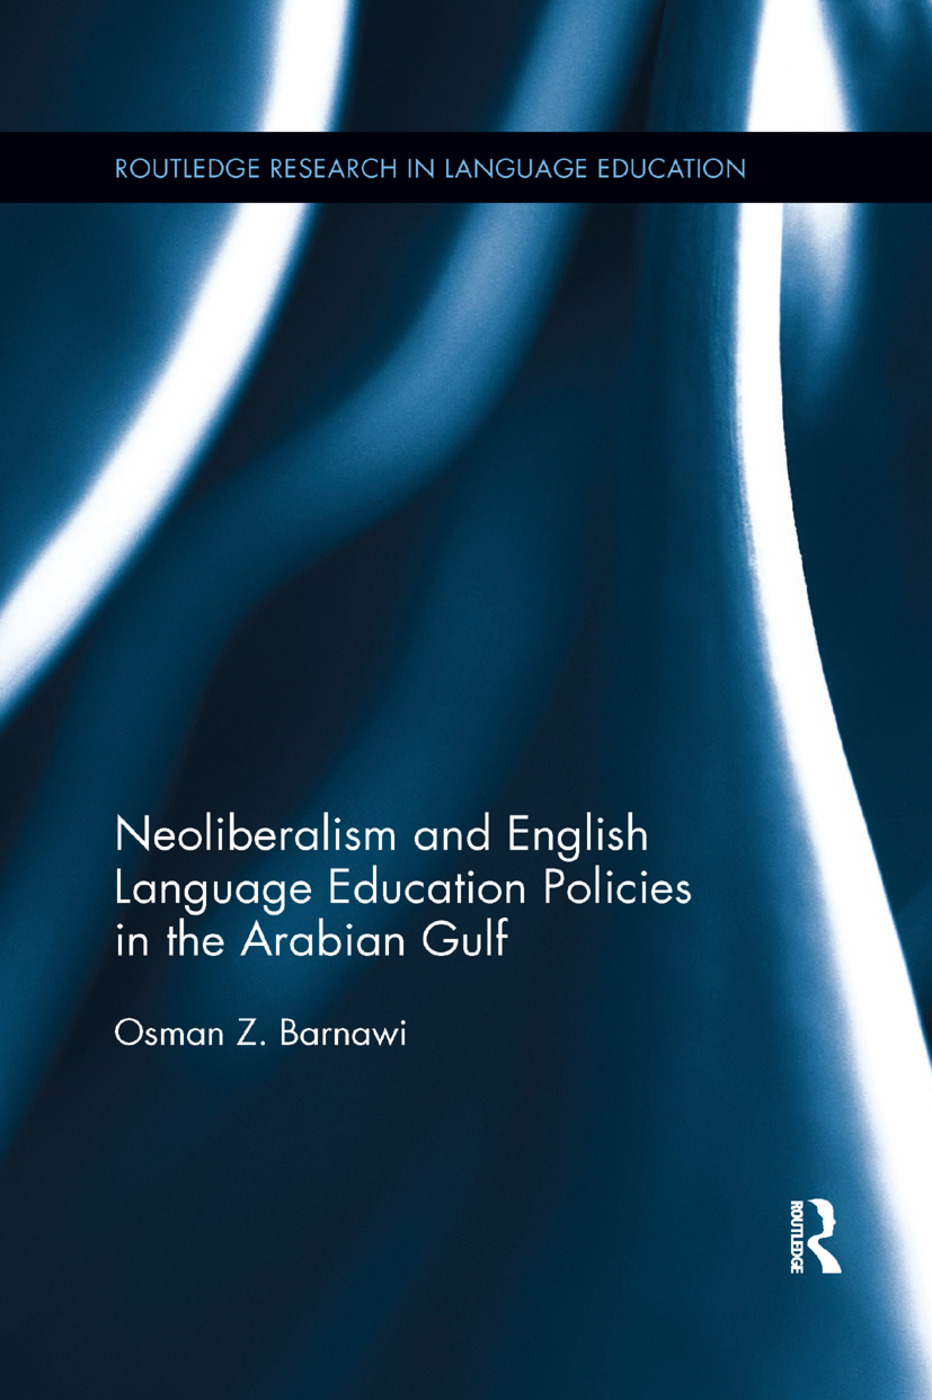 Neoliberalism and English Language Education Policies in the Arabian Gulf book cover